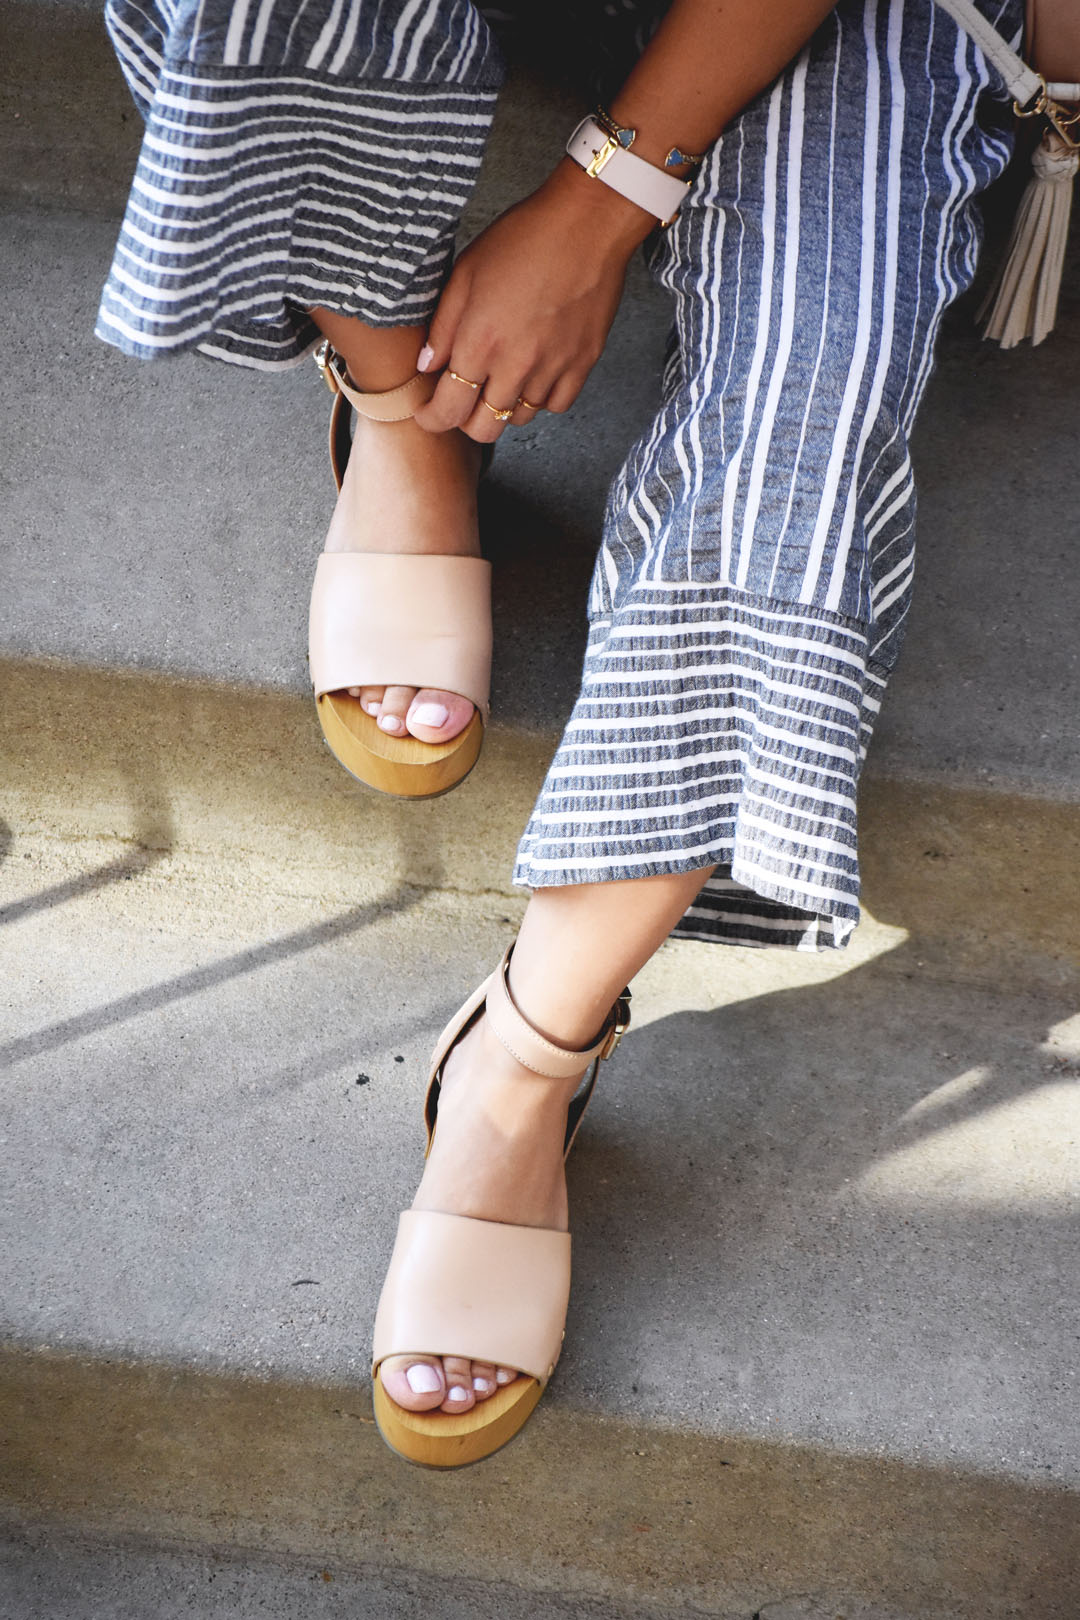 Sam Edelman beige platforms, Abbot lyon pink watch, and a Kendra Scott gold bracelet